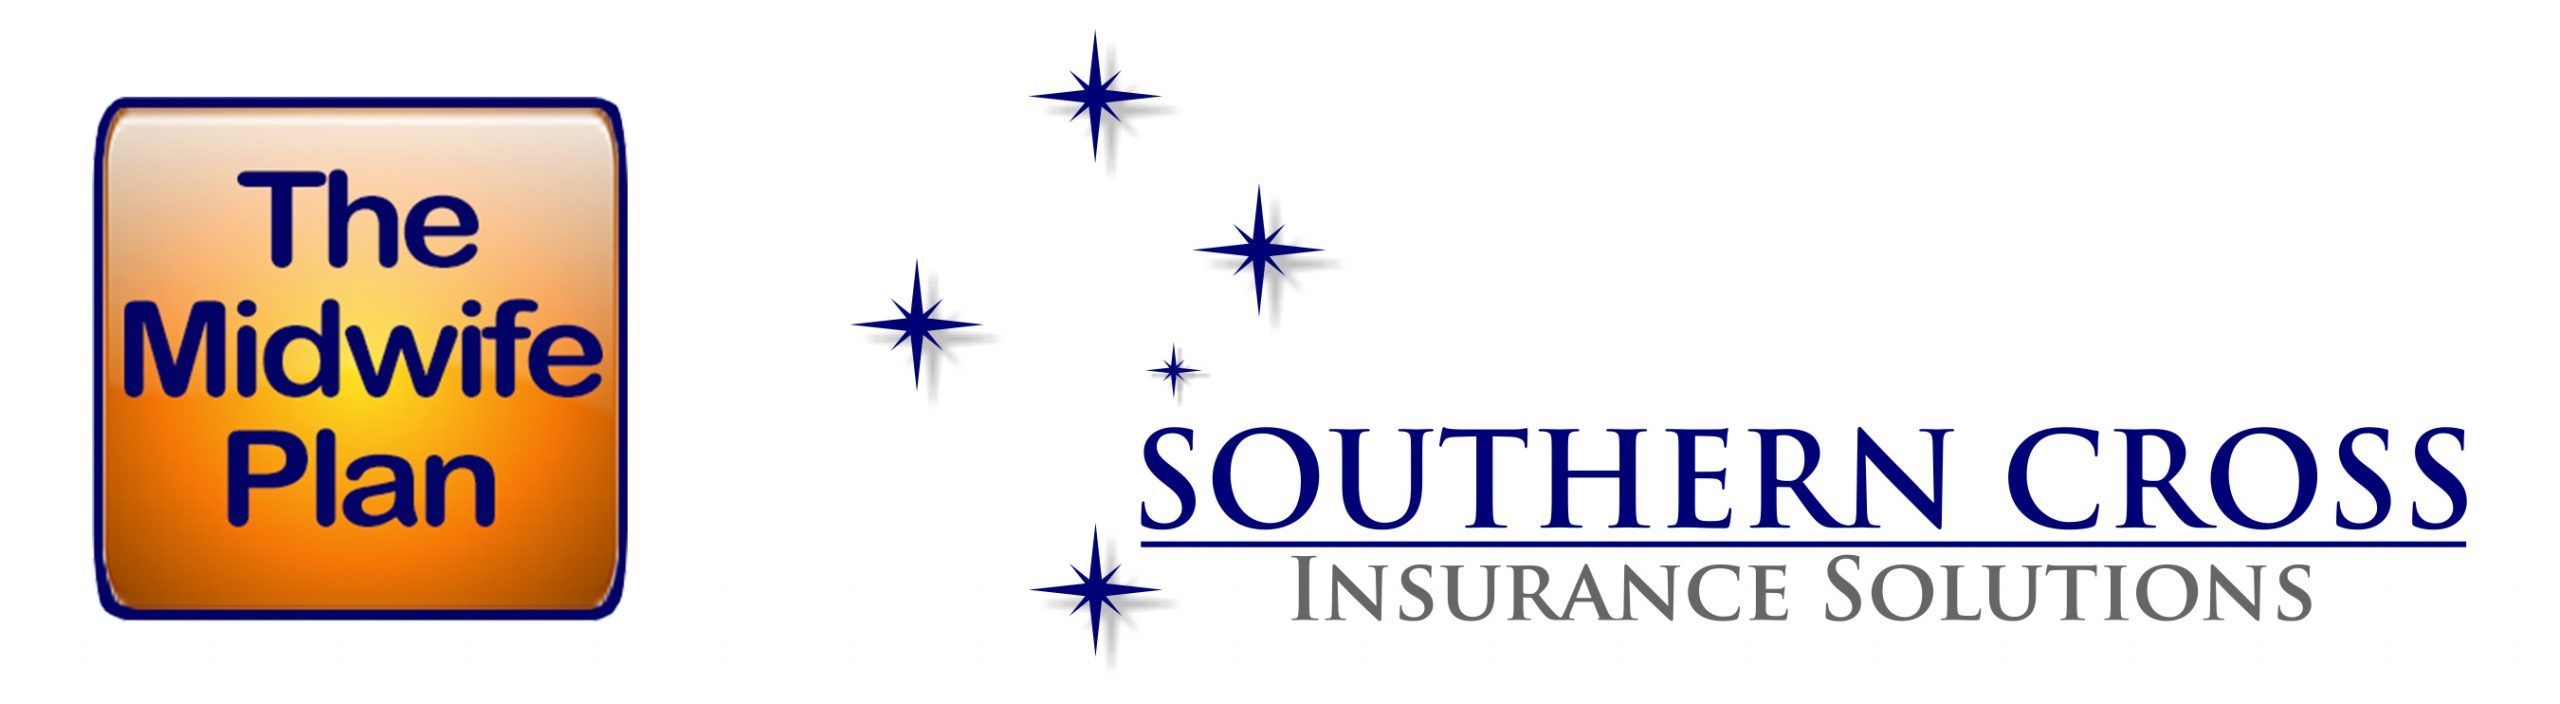 The Midwife Plan | Southern Cross Insurance Solutions